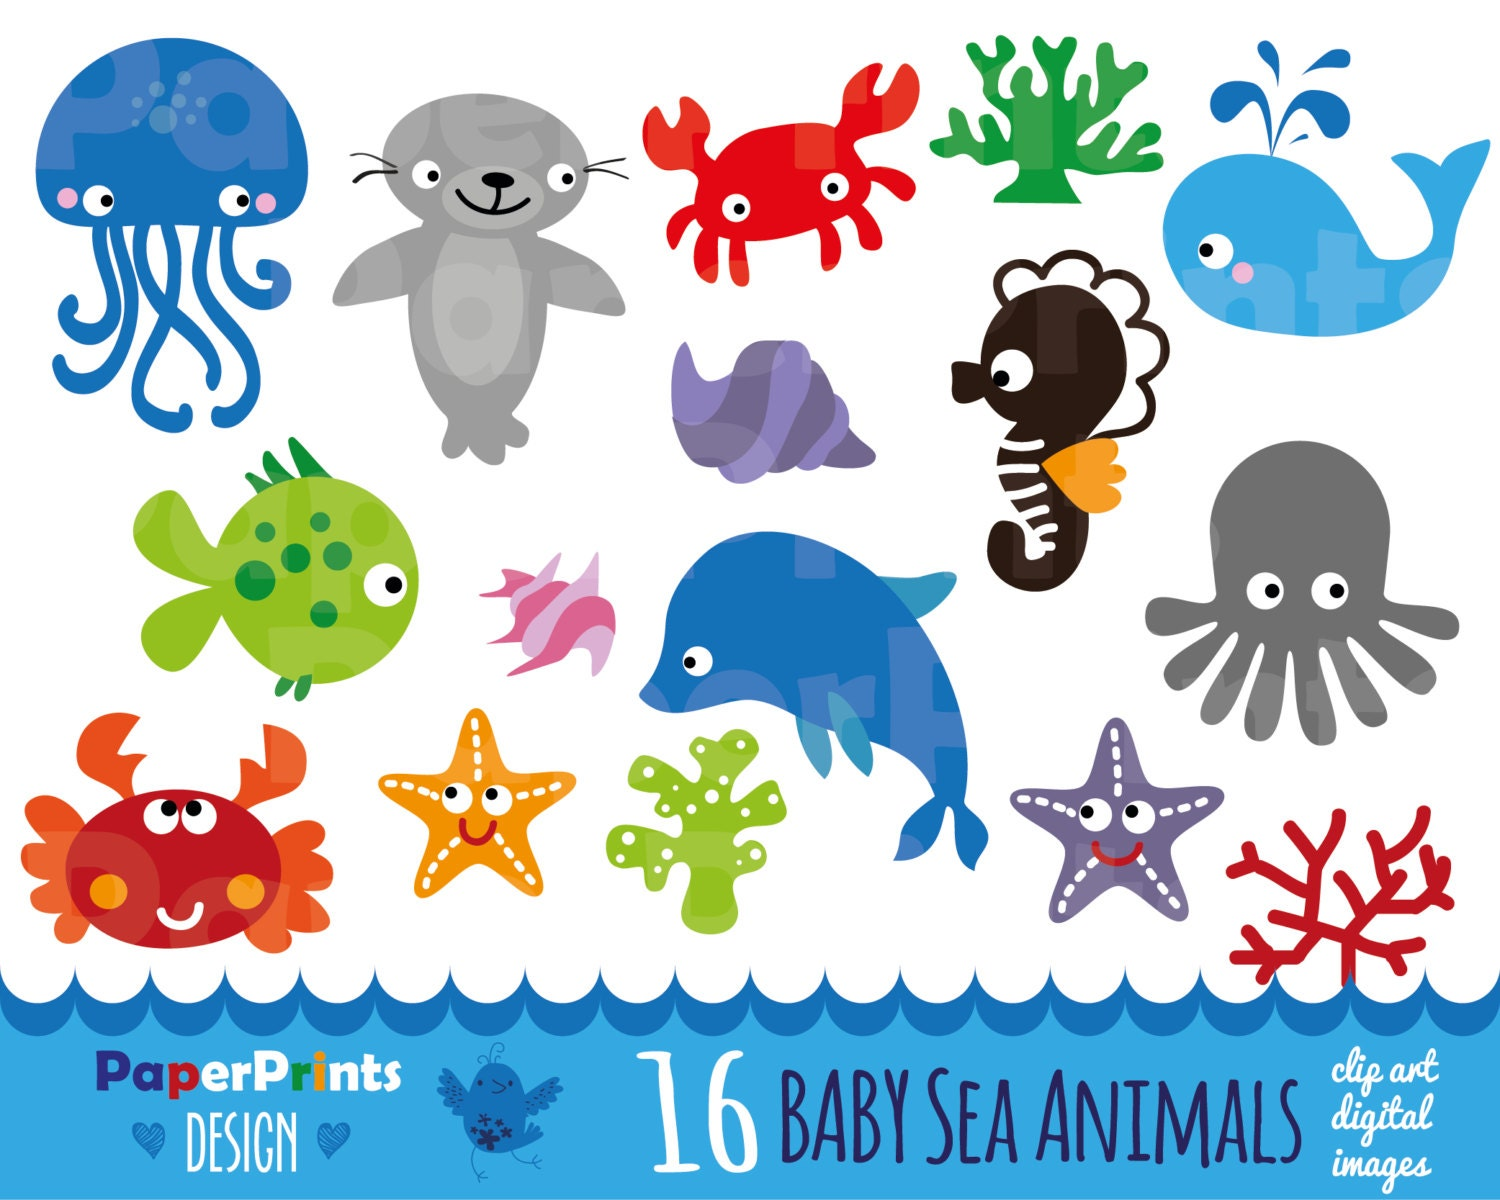 16 baby sea animals sea animals patterns sea by PaperPrintsDesign